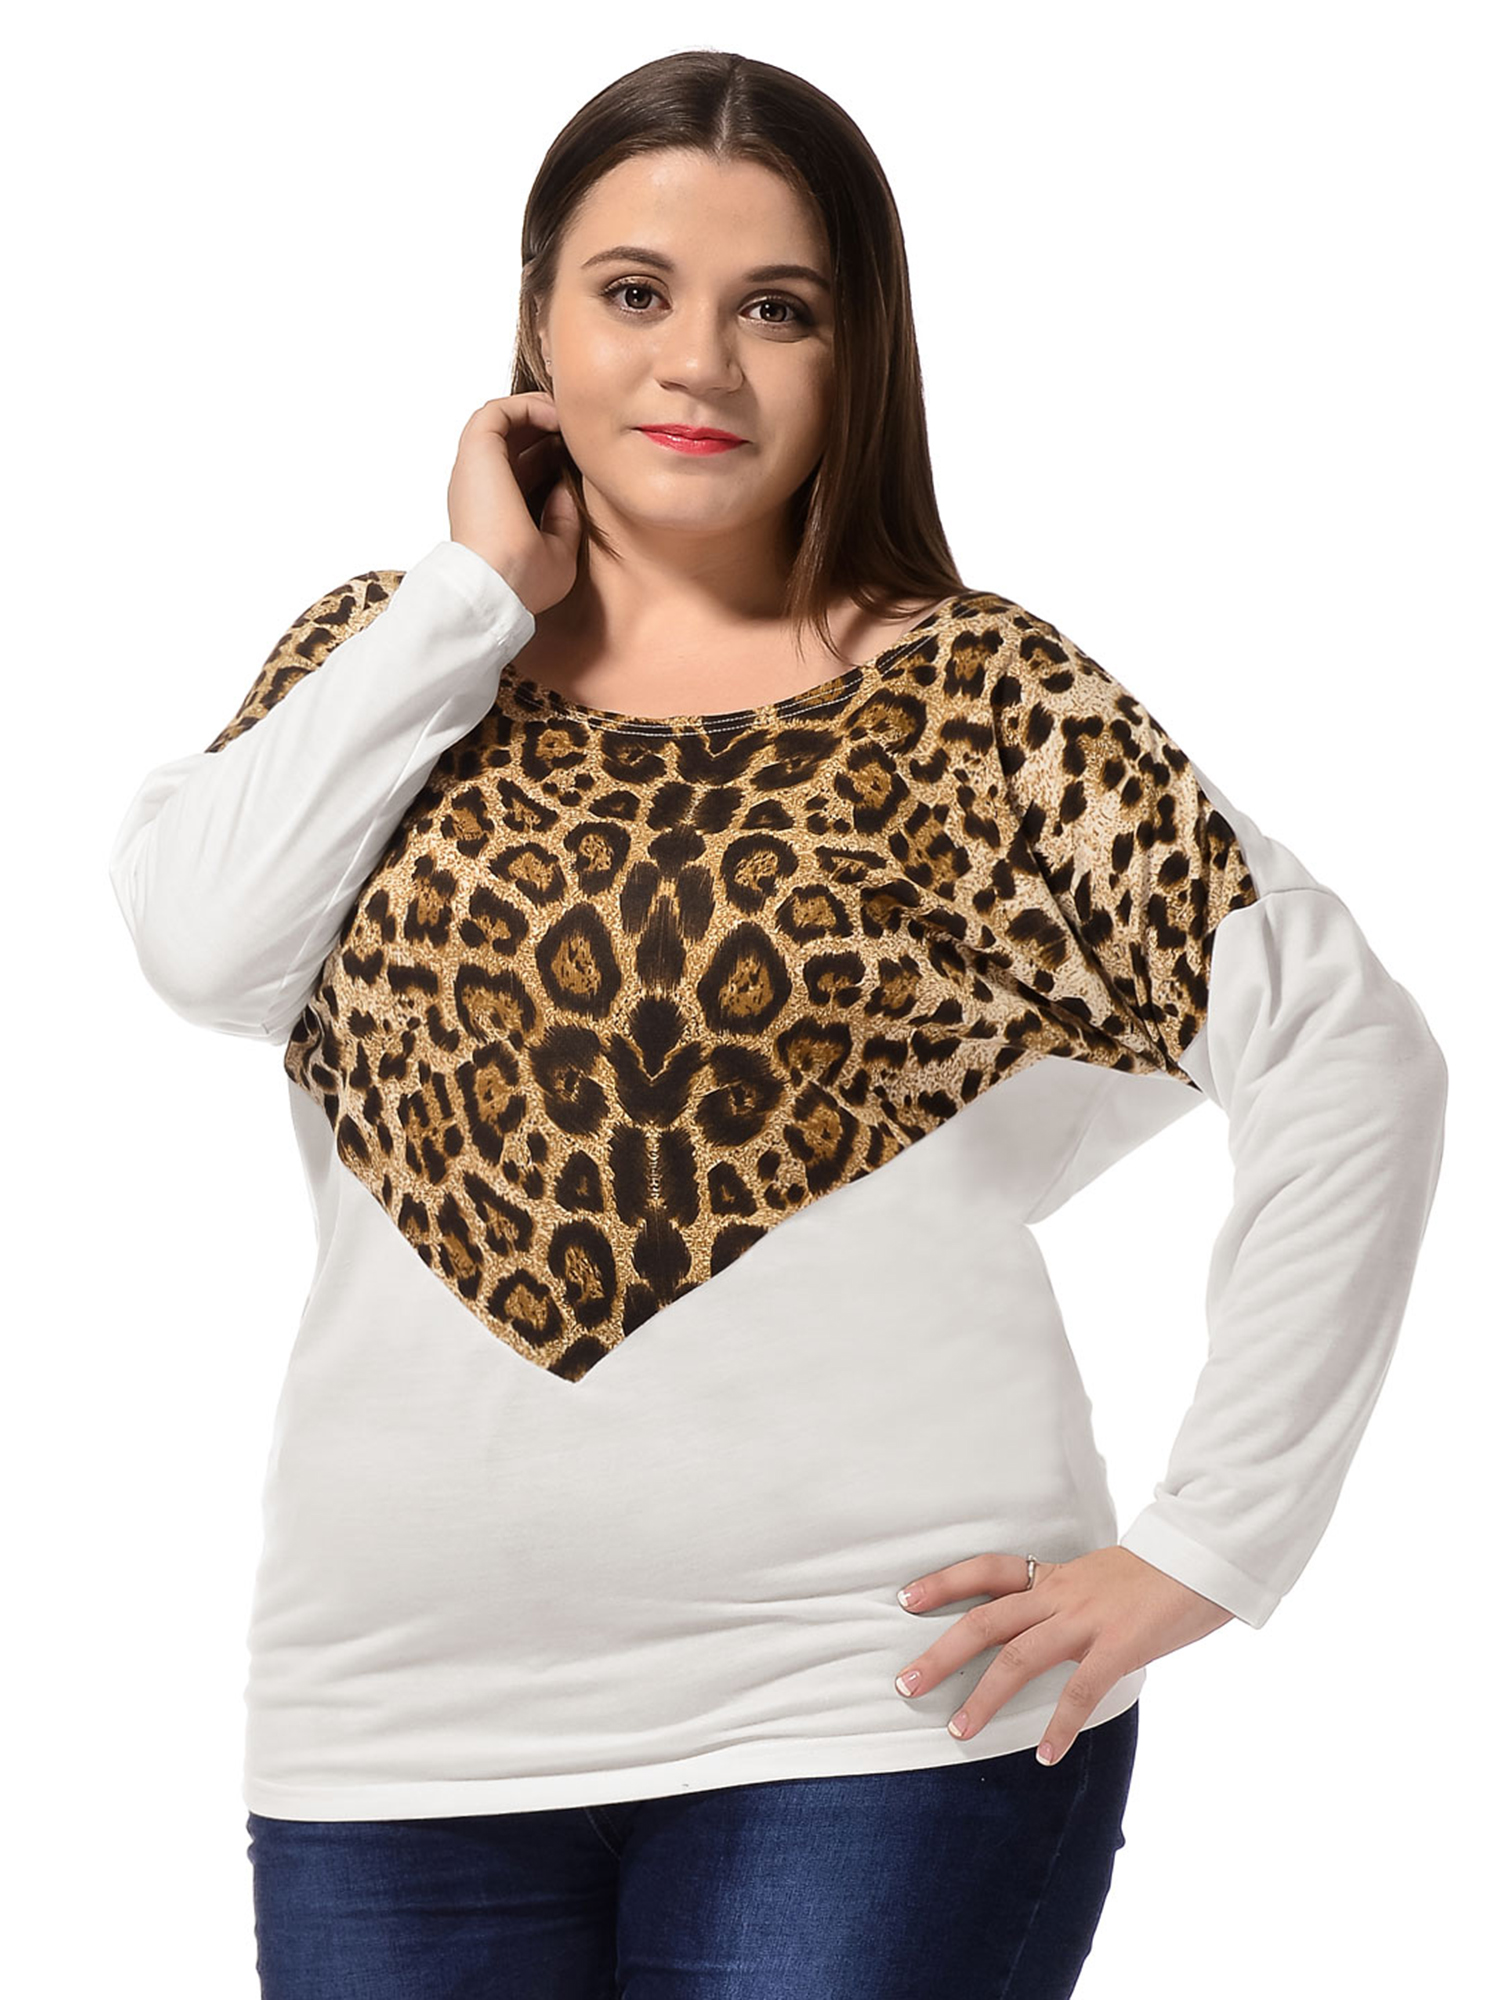 Scoop Neck Fashional Knitted Tee Shirt for Lady Plus Size